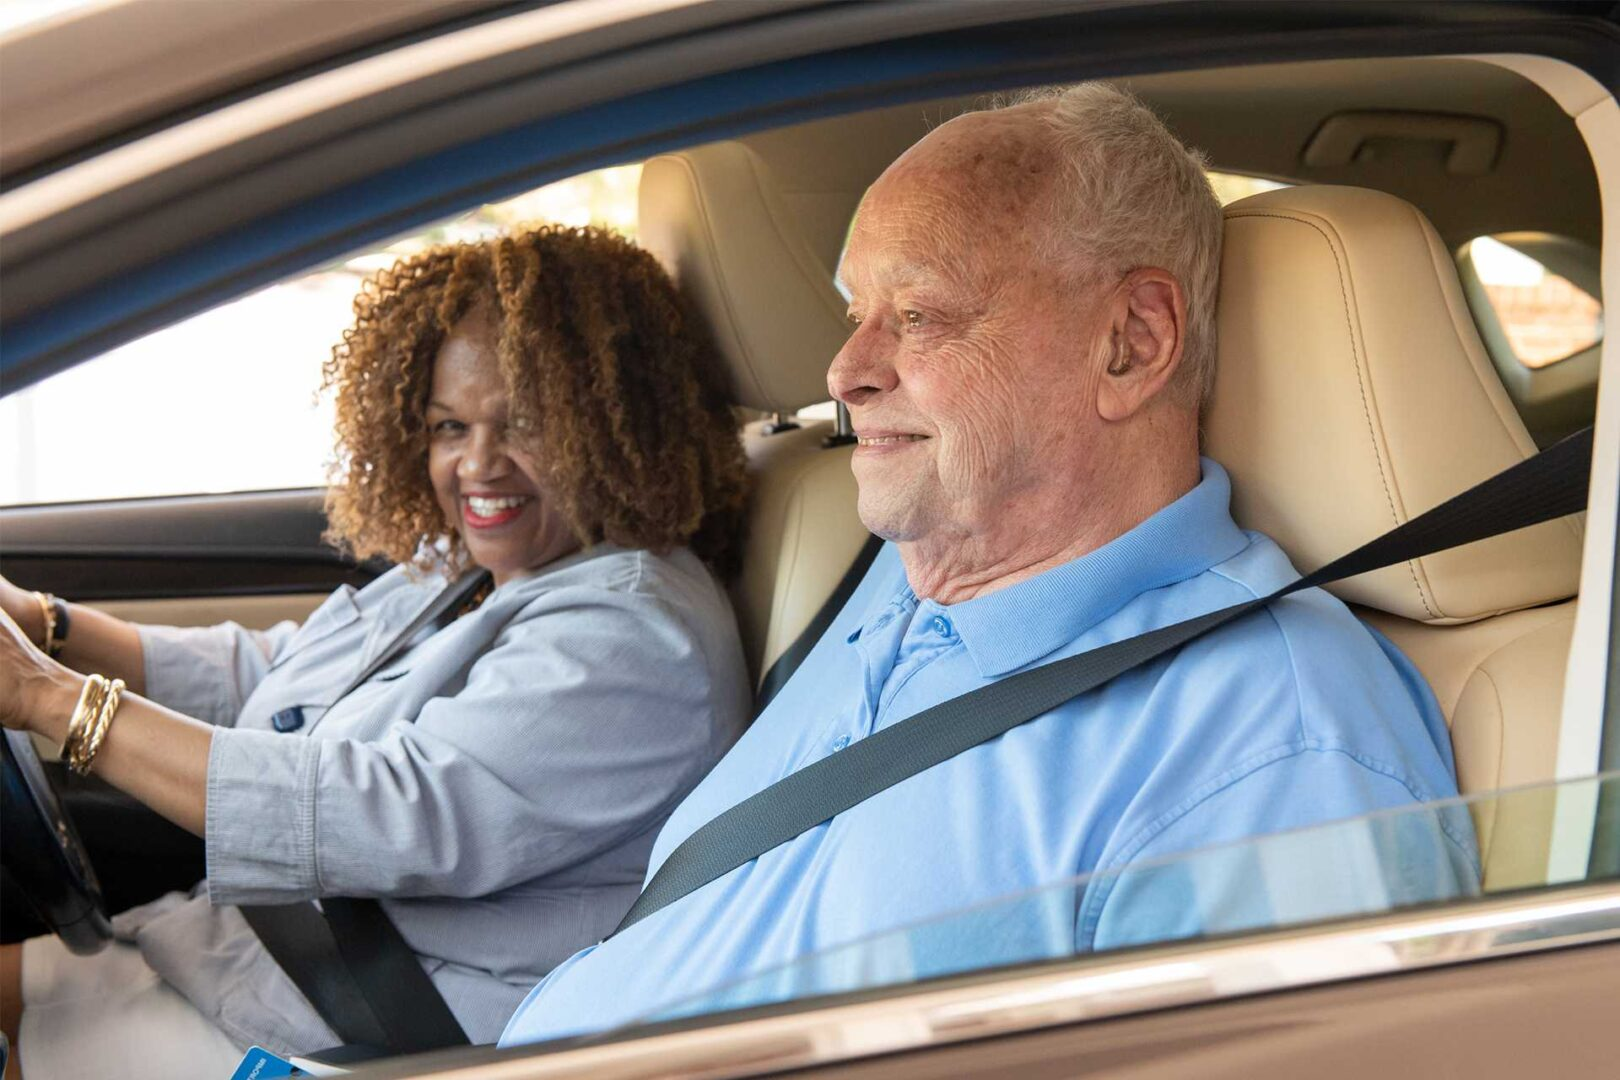 A young woman is the driver of a car with an elderly gentleman in the front passenger seat. Both are smiling because transportation for seniors is now solved!